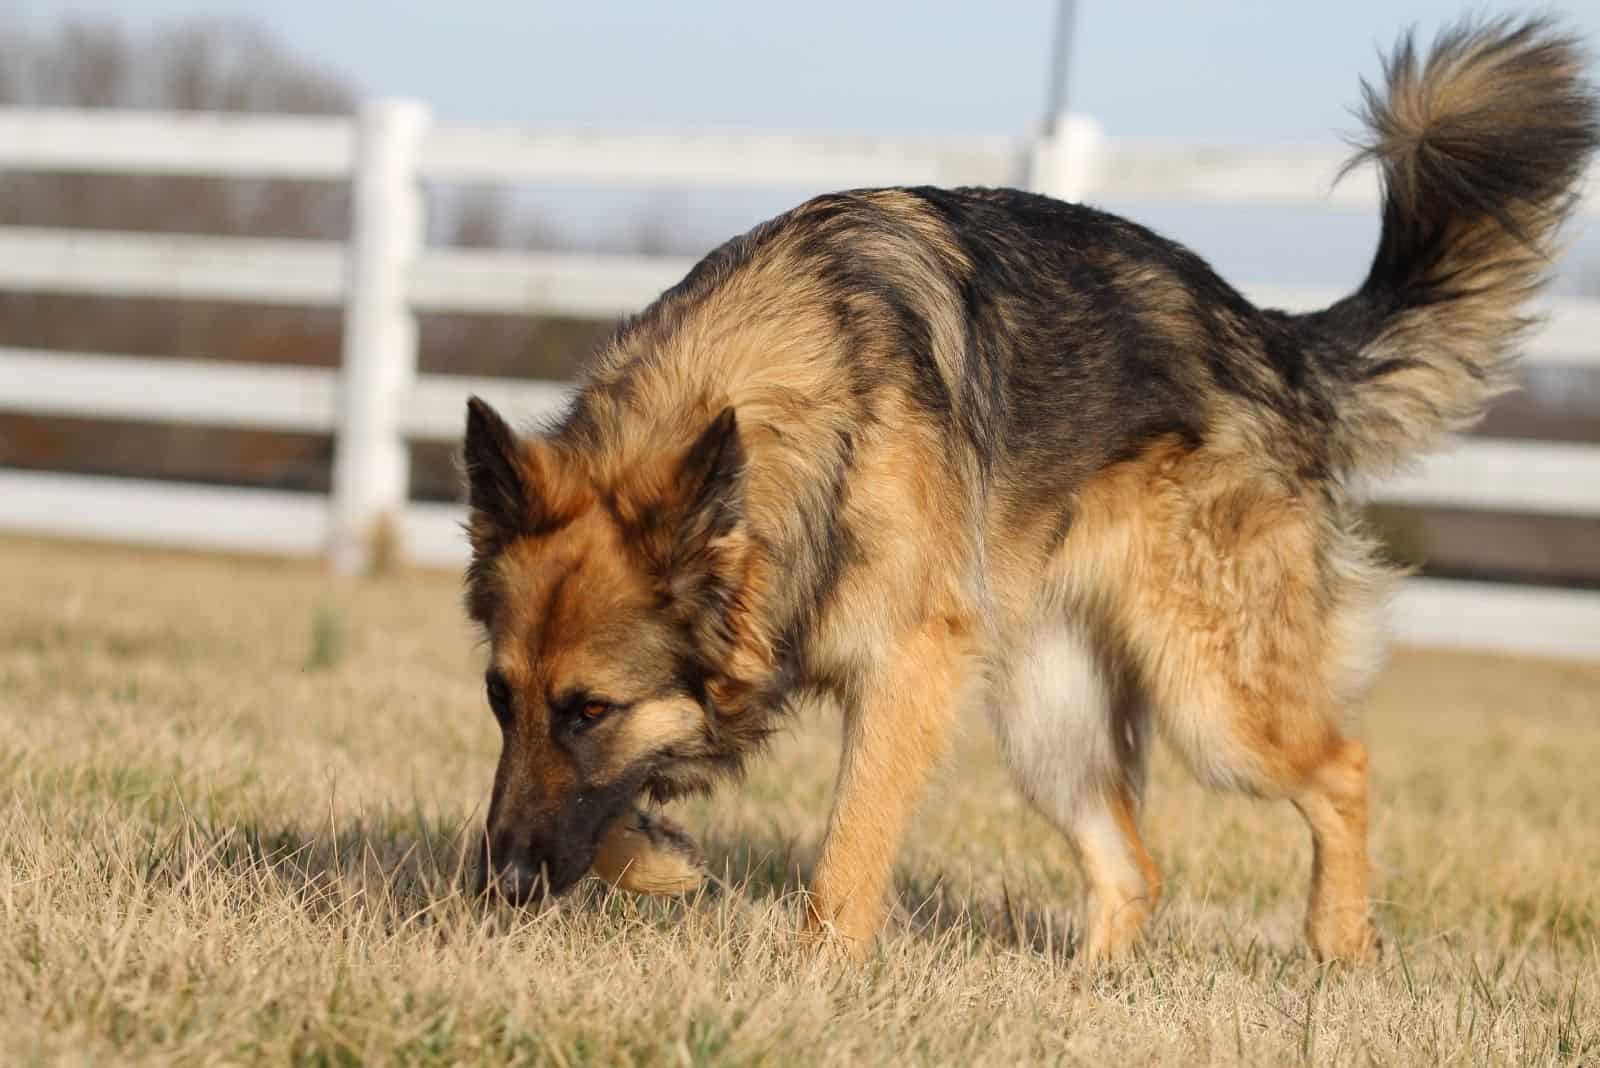 german shepherd sniffing on the ground with dry grasses